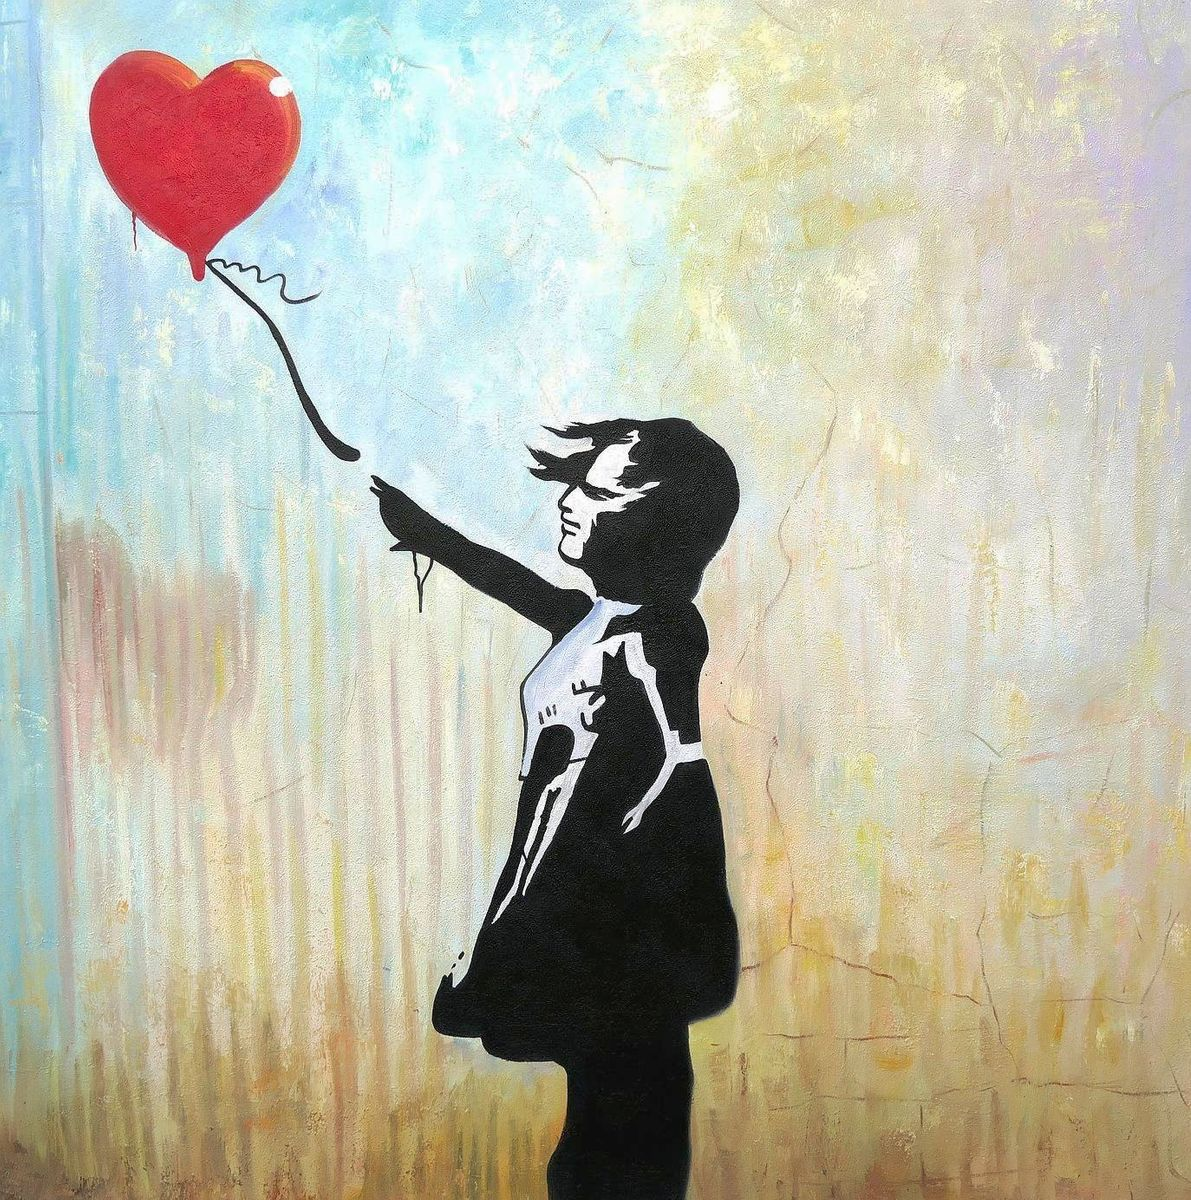 Homage to Banksy - Girl with balloon m97205 120x120cm exquisites Ölgemälde